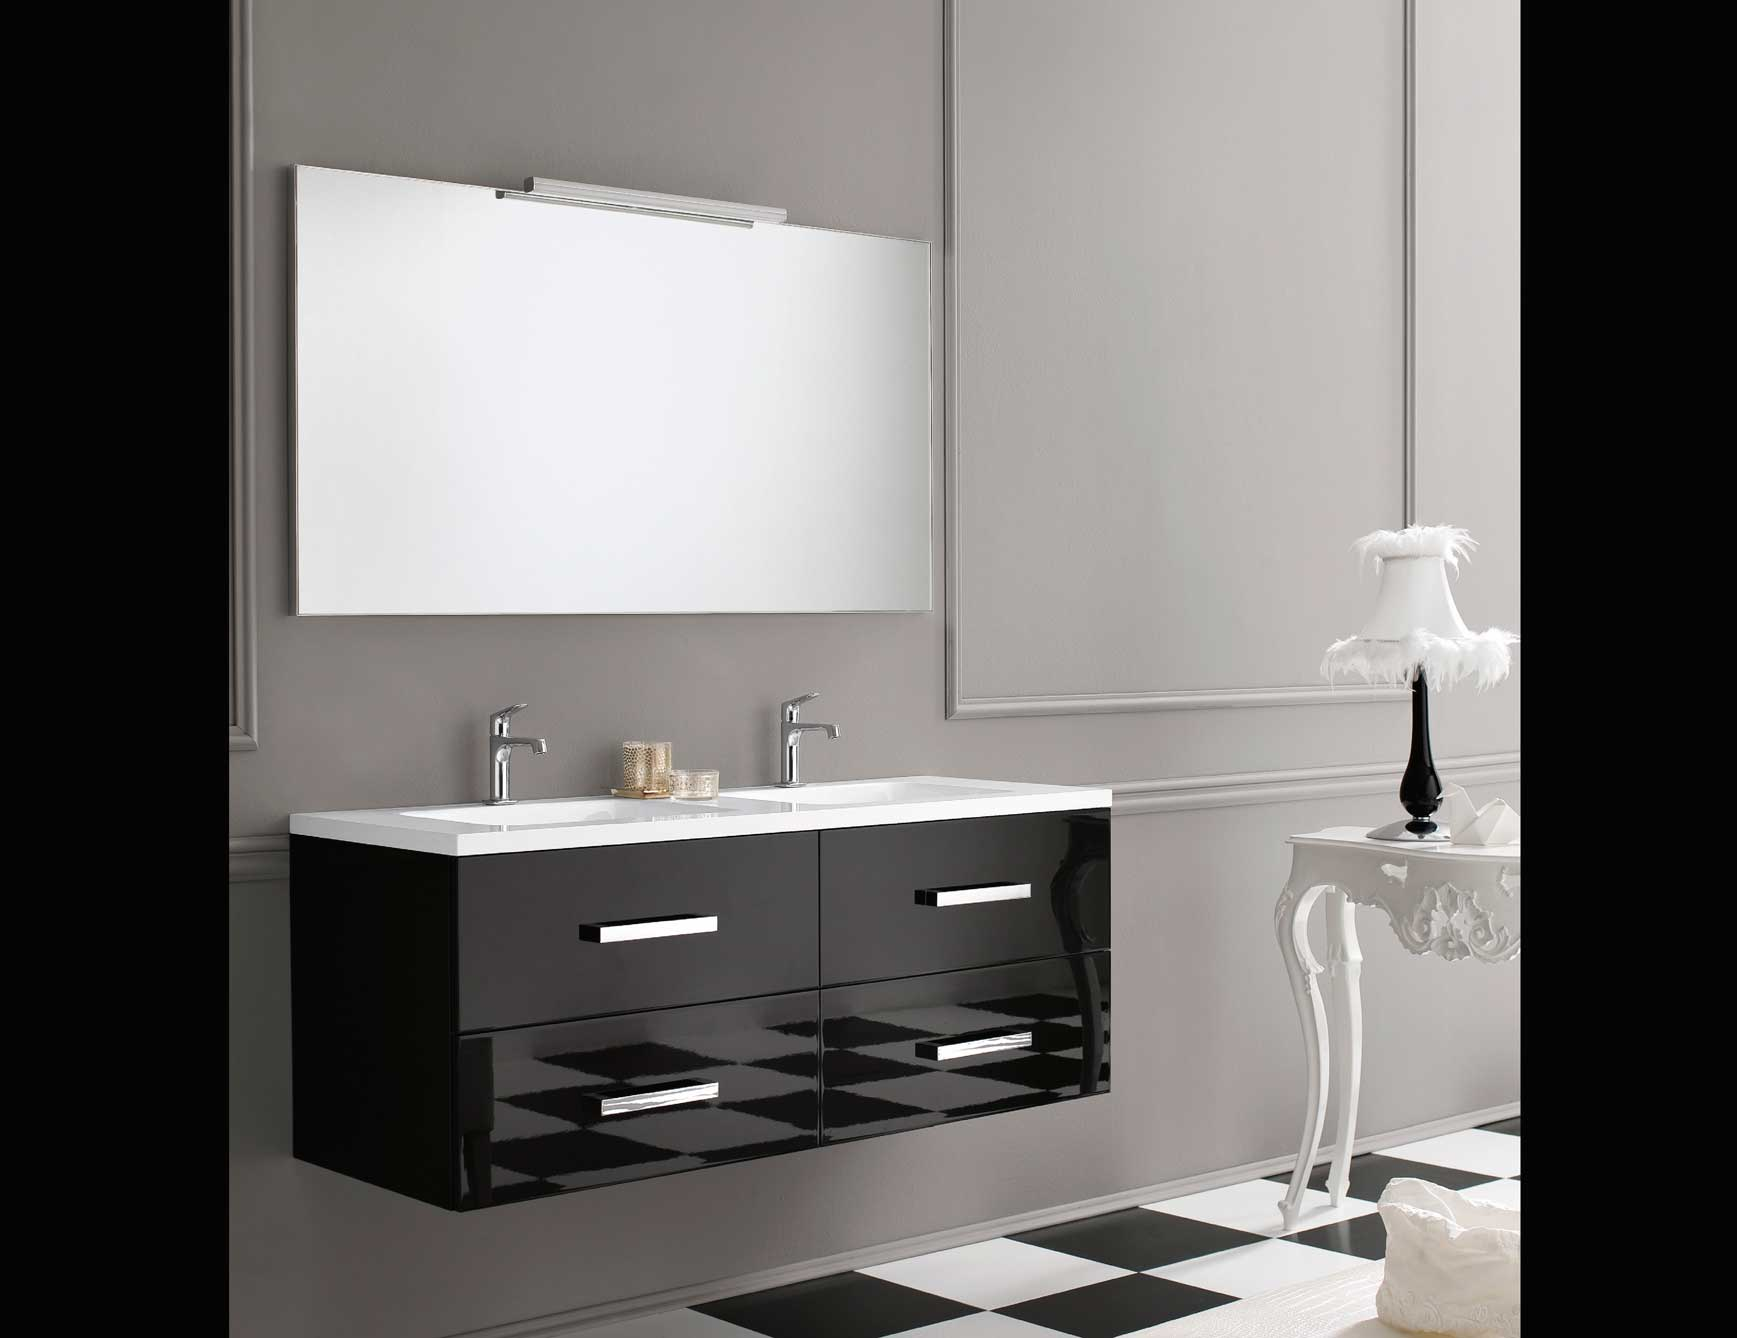 bathroom-cool-bon-ton-black-lacquered-wood-floating-double-sink-cabinet-with-drawer-under-rectangular-mirror-design-with-small-white-table-lamp-also-checkerboard-tile-floor-as-a-modern